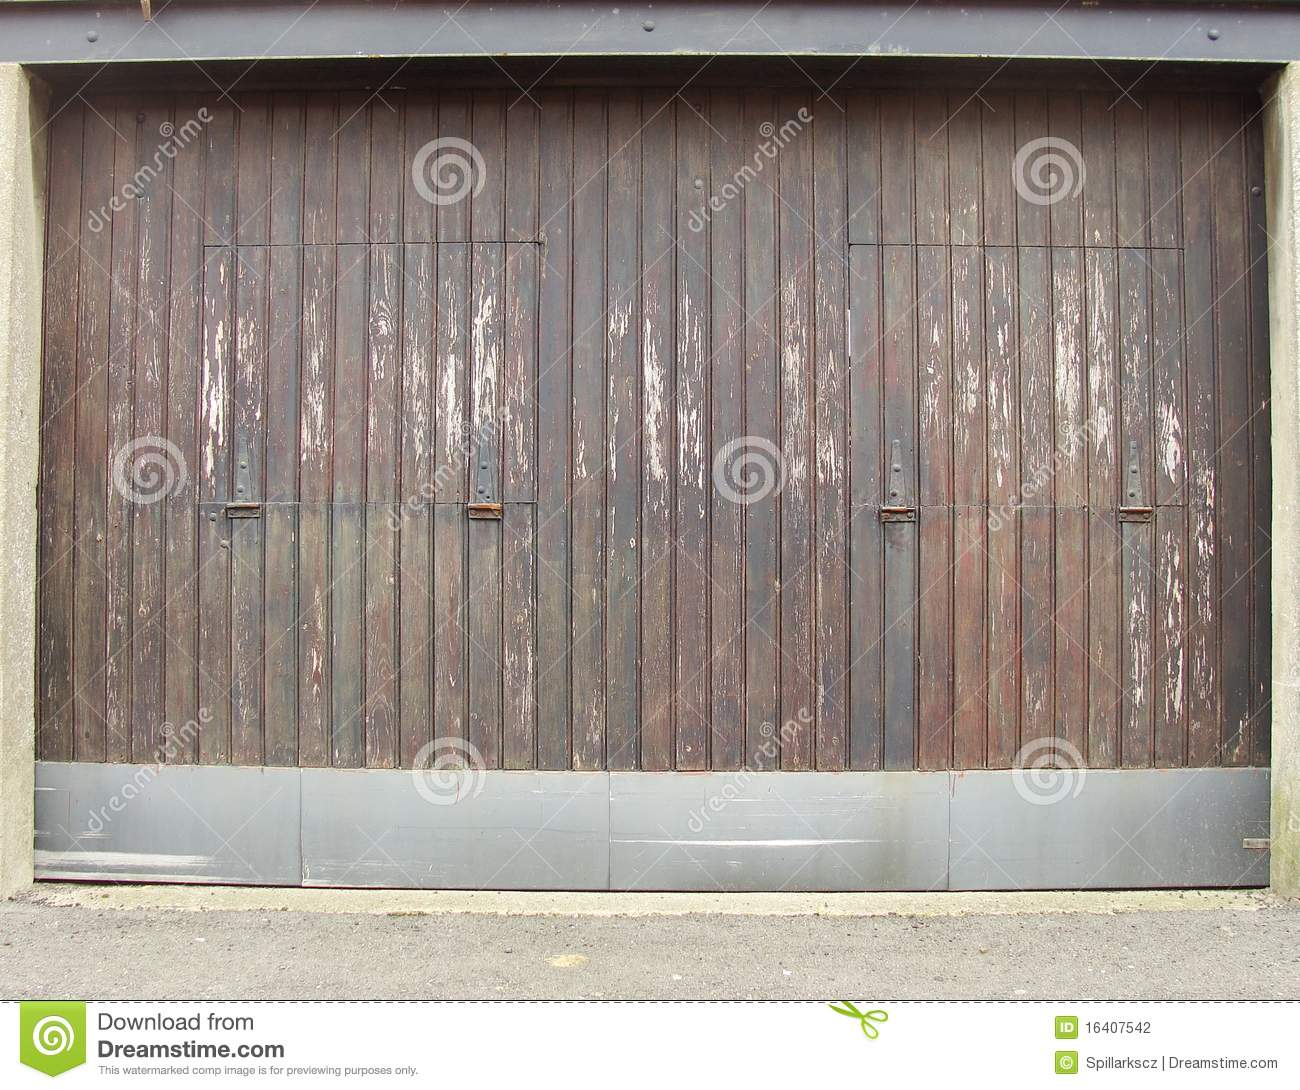 Worn Wood And Metal Barn Garage Door Stock Photo Image